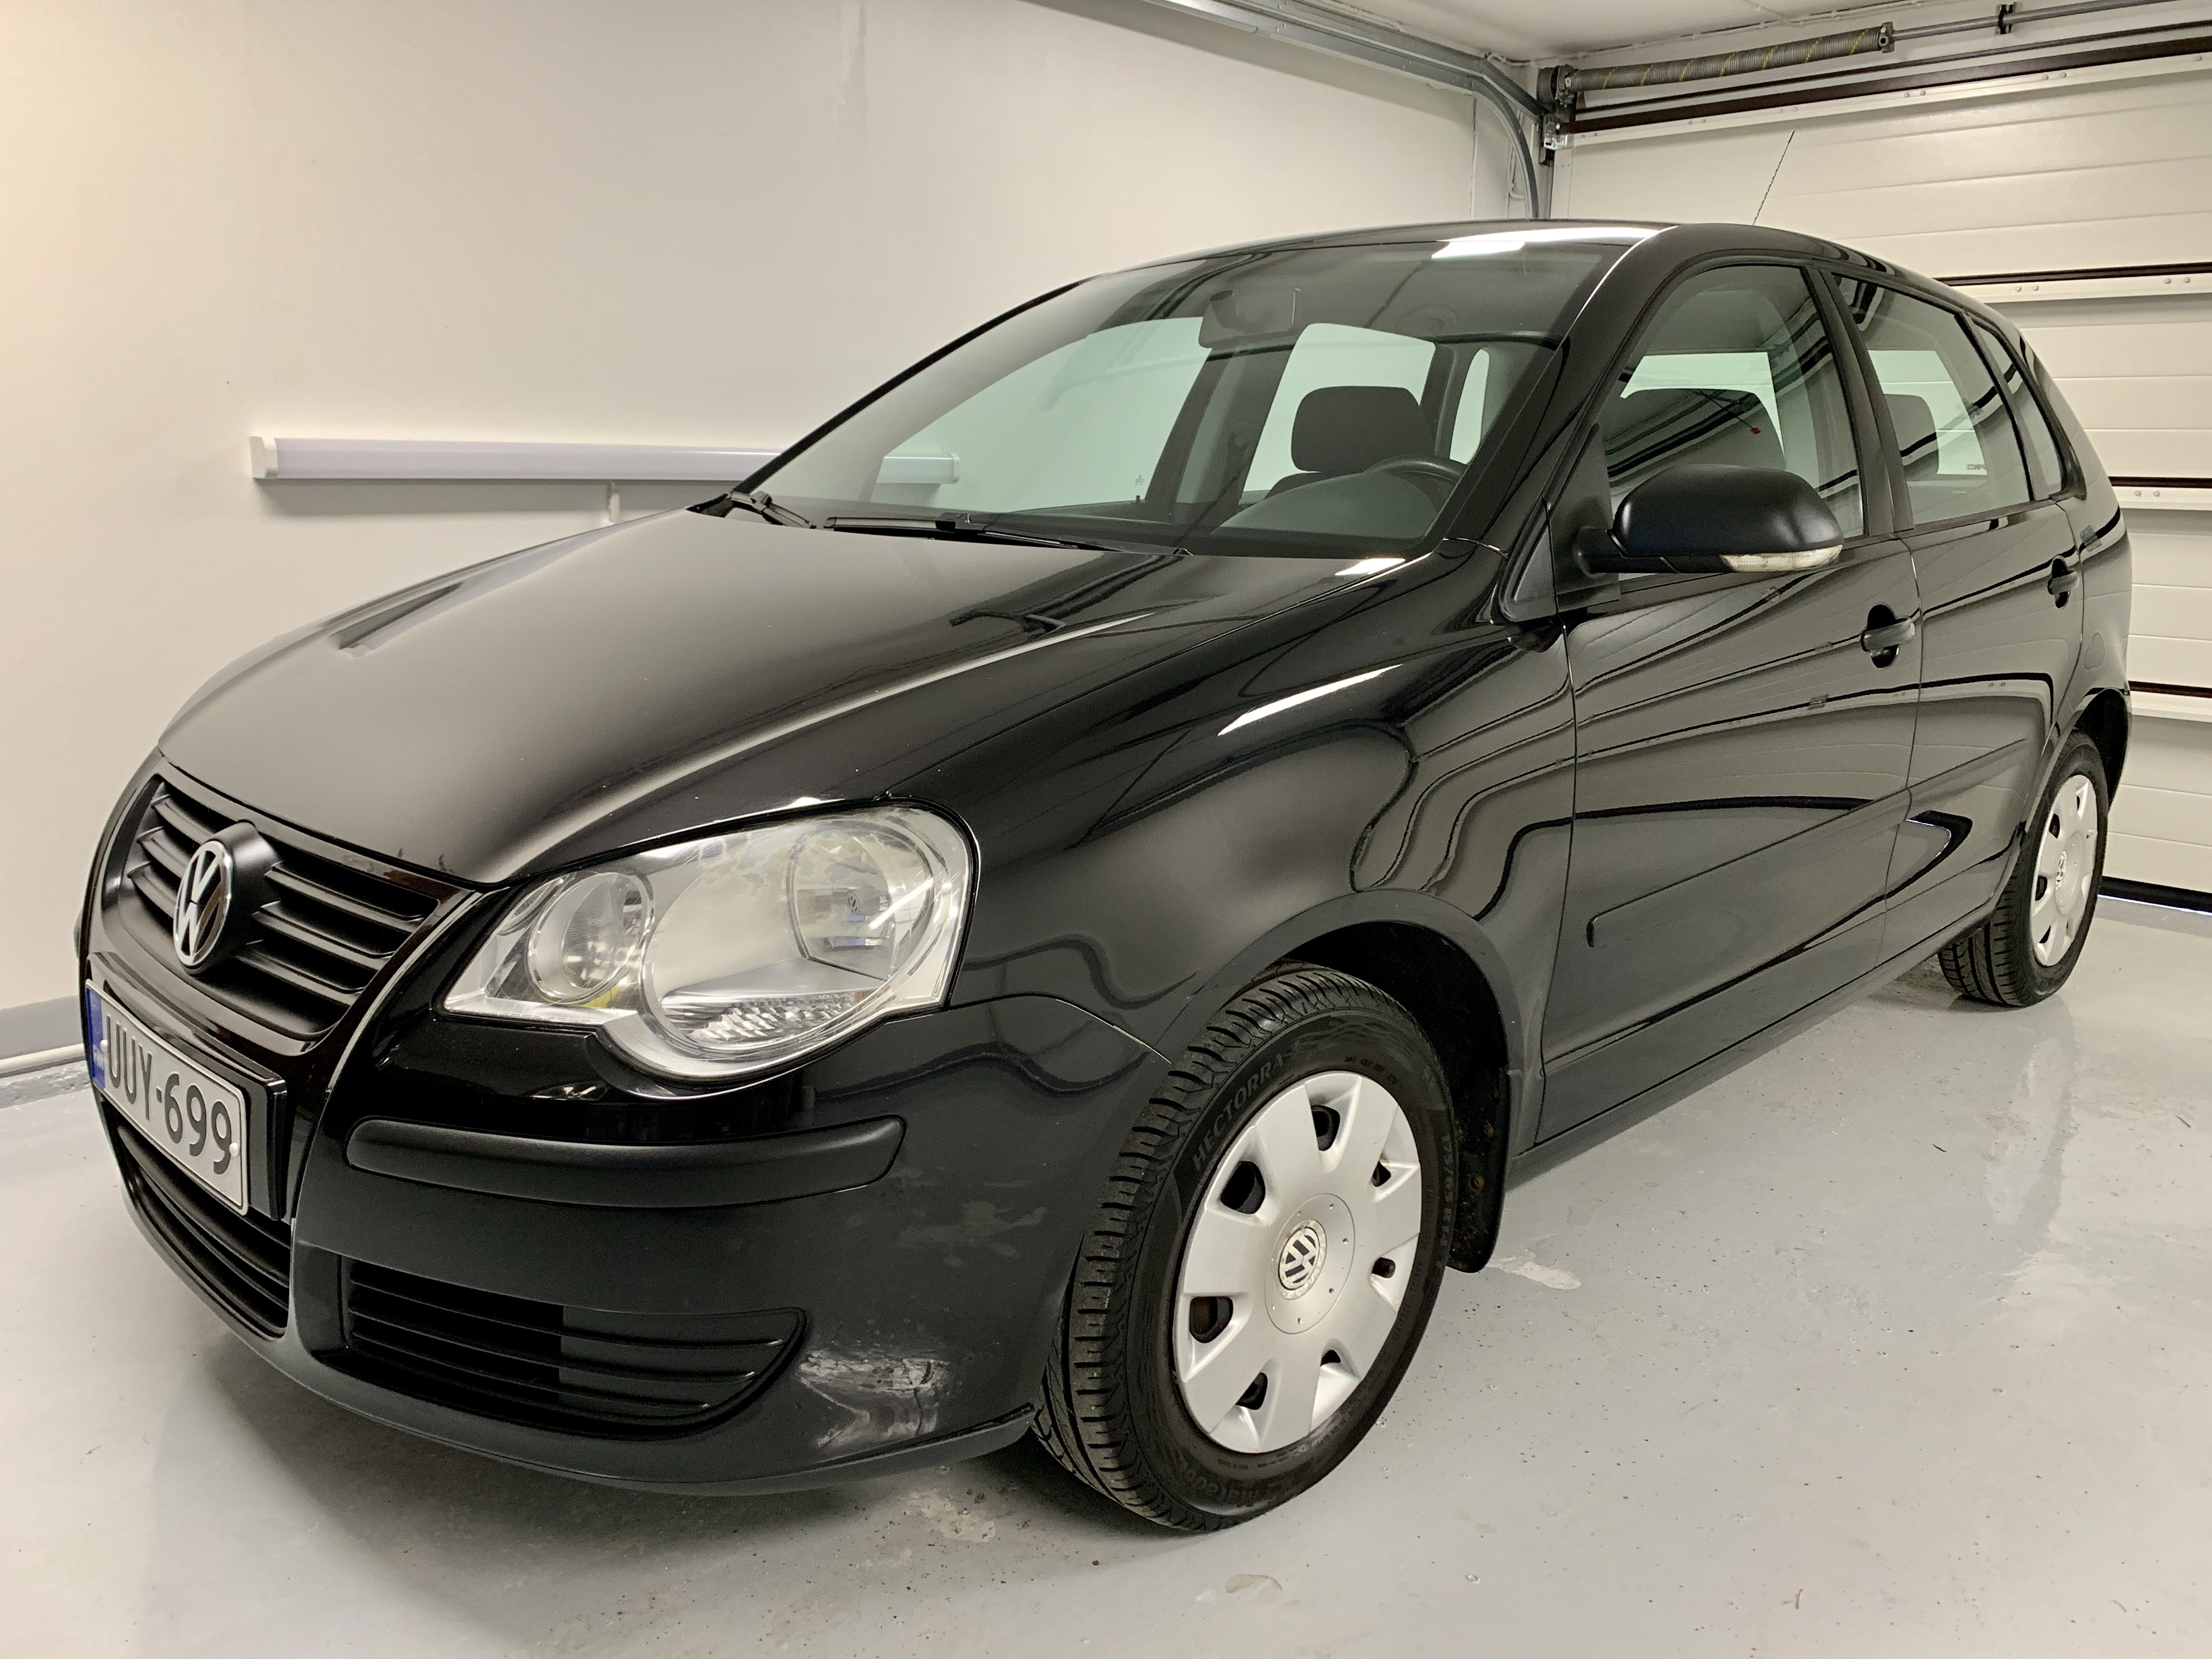 VW Polo 1.4i 5d Trend Black Edition